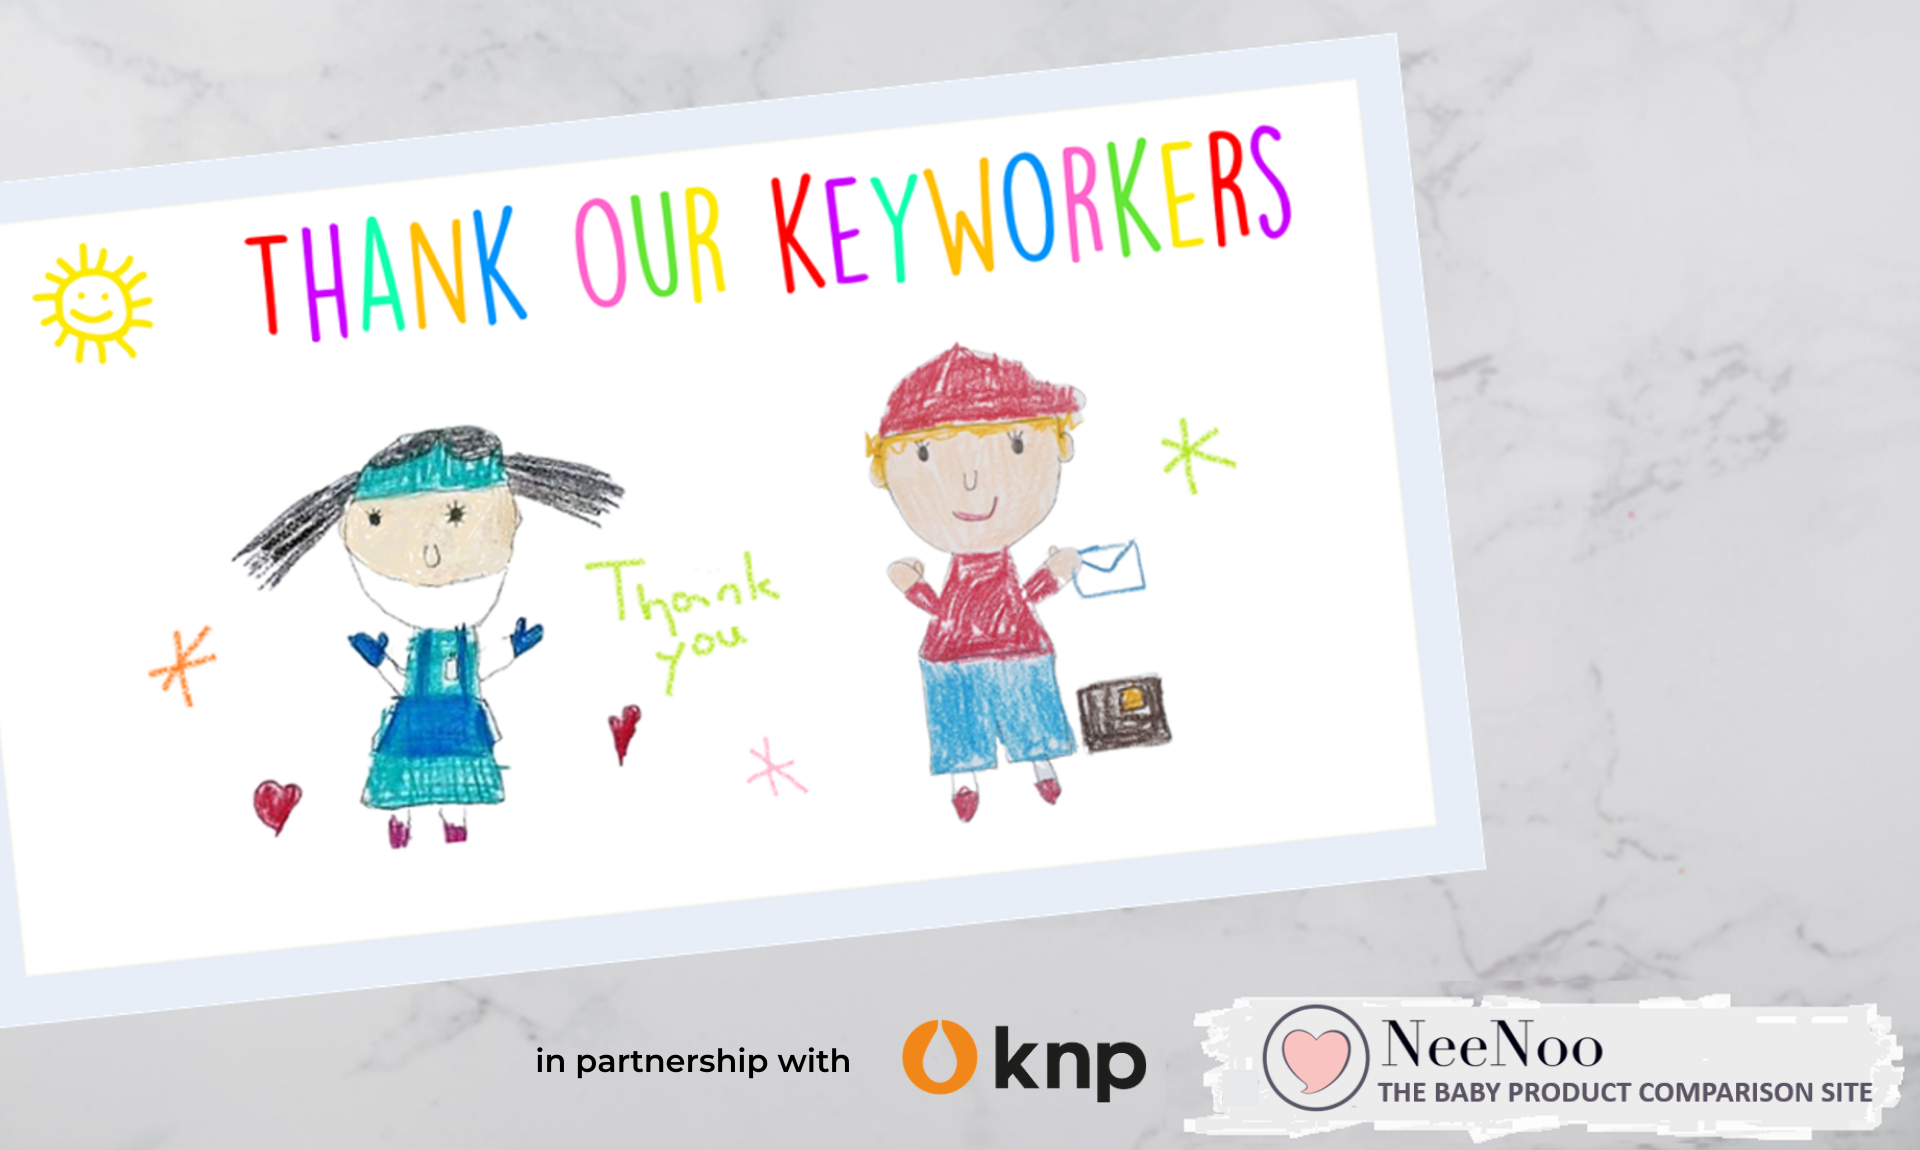 Thank Our Keyworkers postcard image